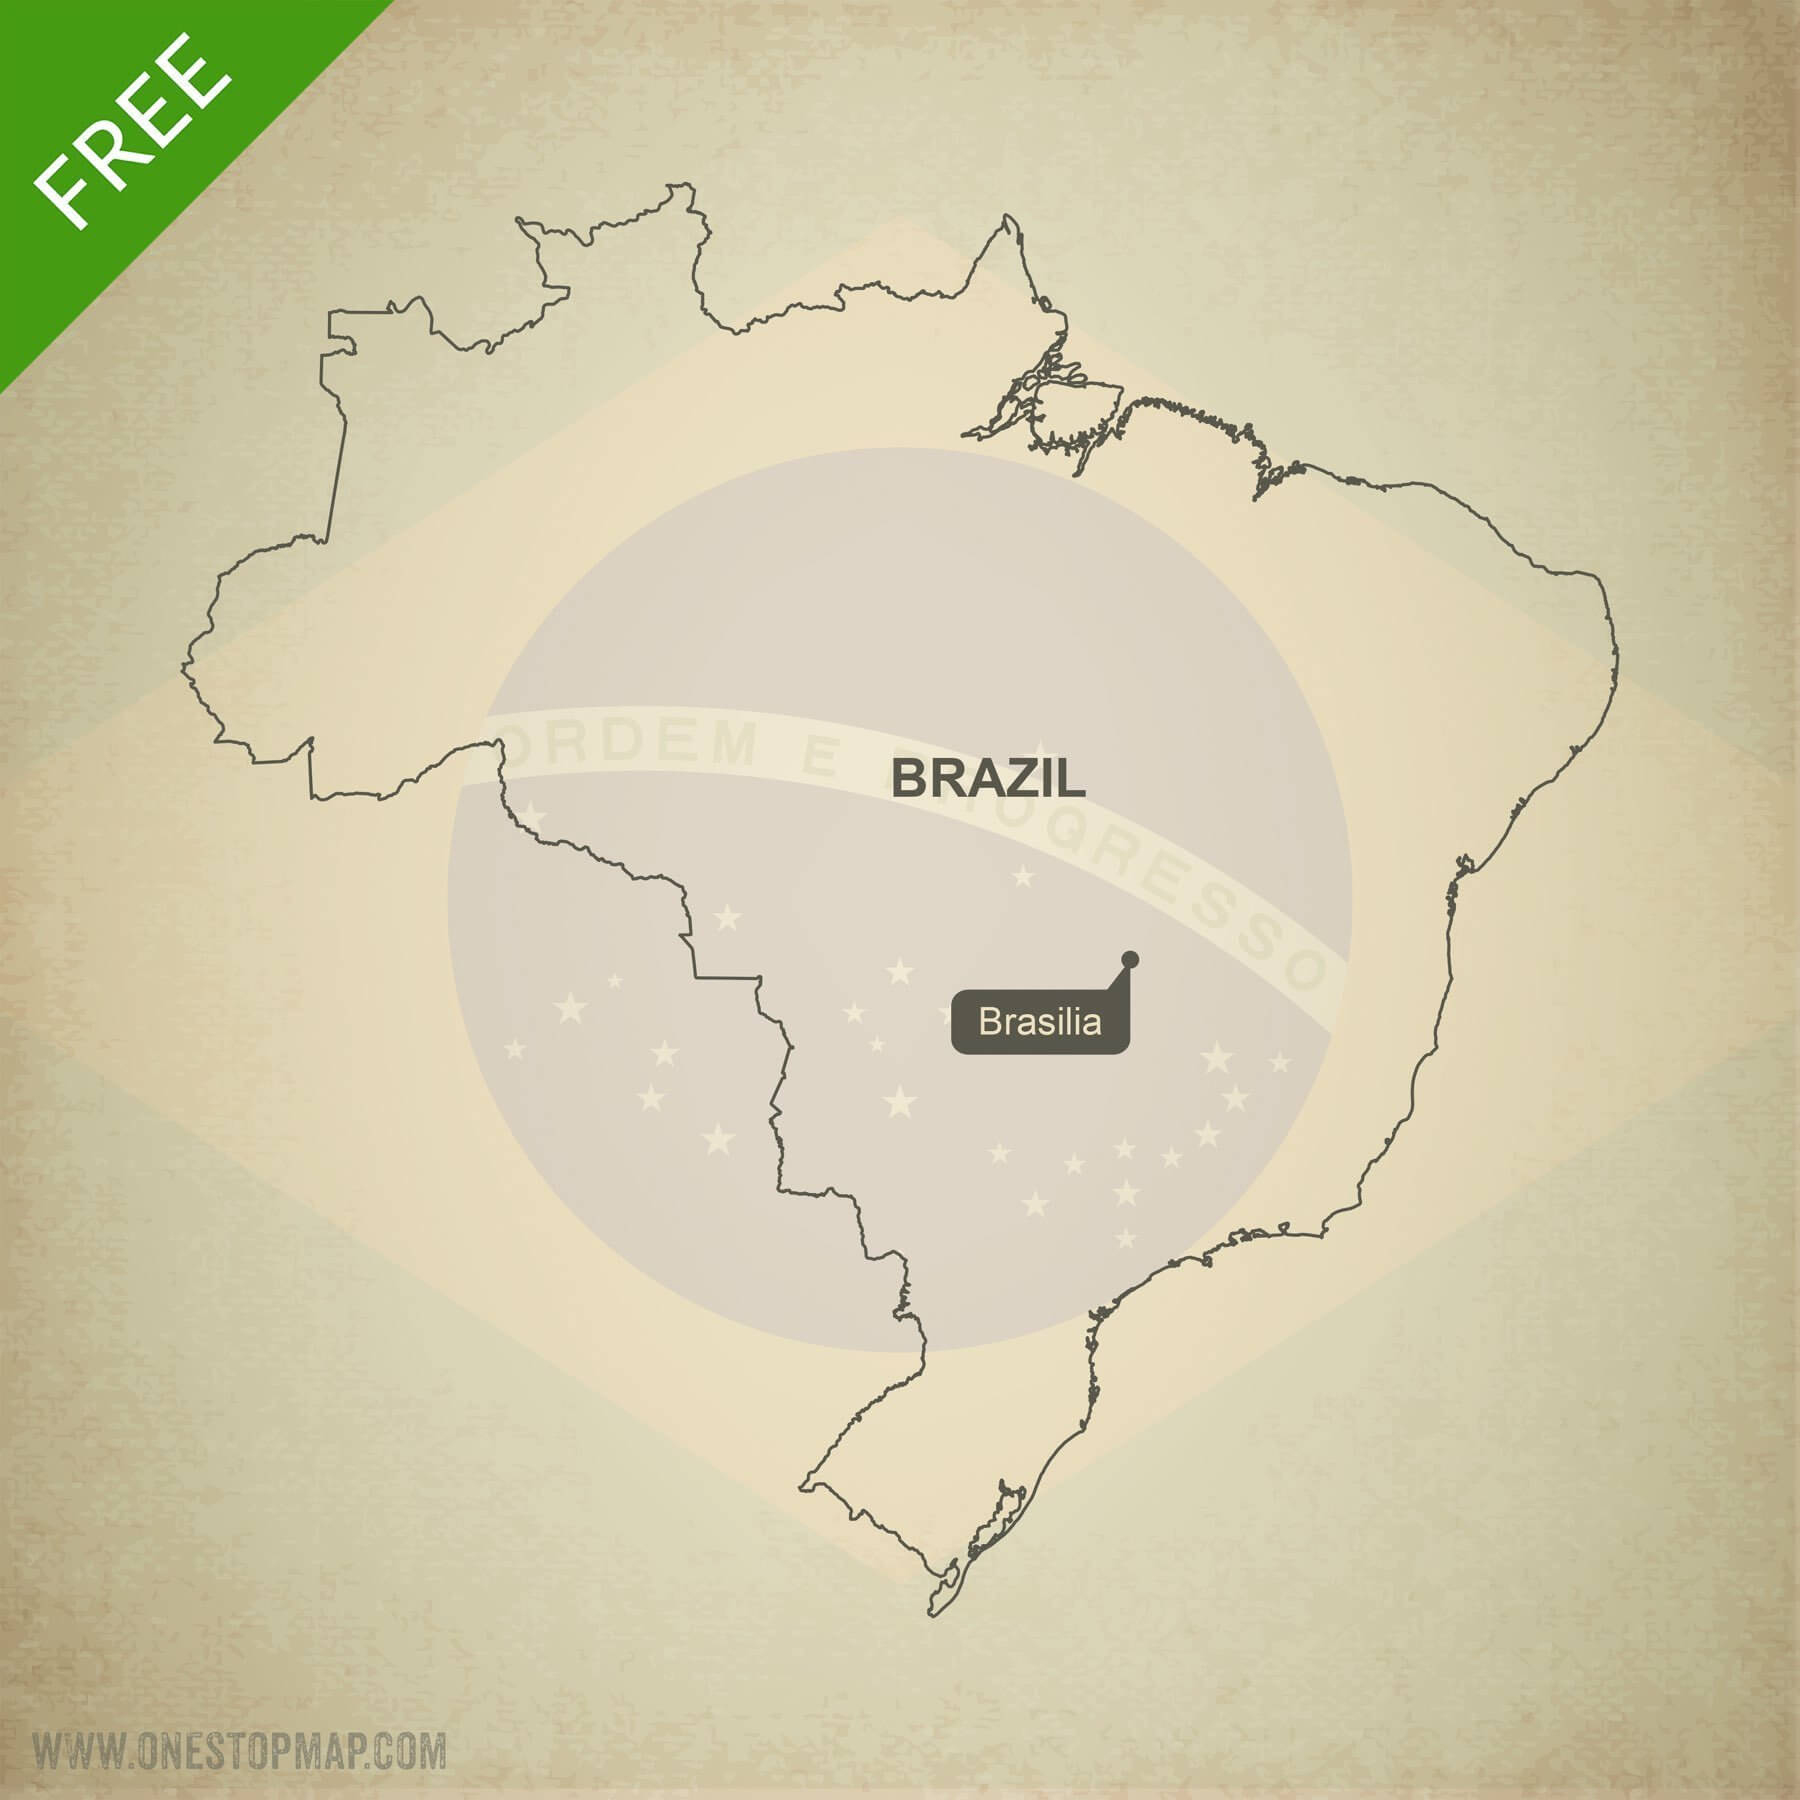 Free Vector Map Of Brazil Outline | One Stop Map - Free Printable Map Of Brazil